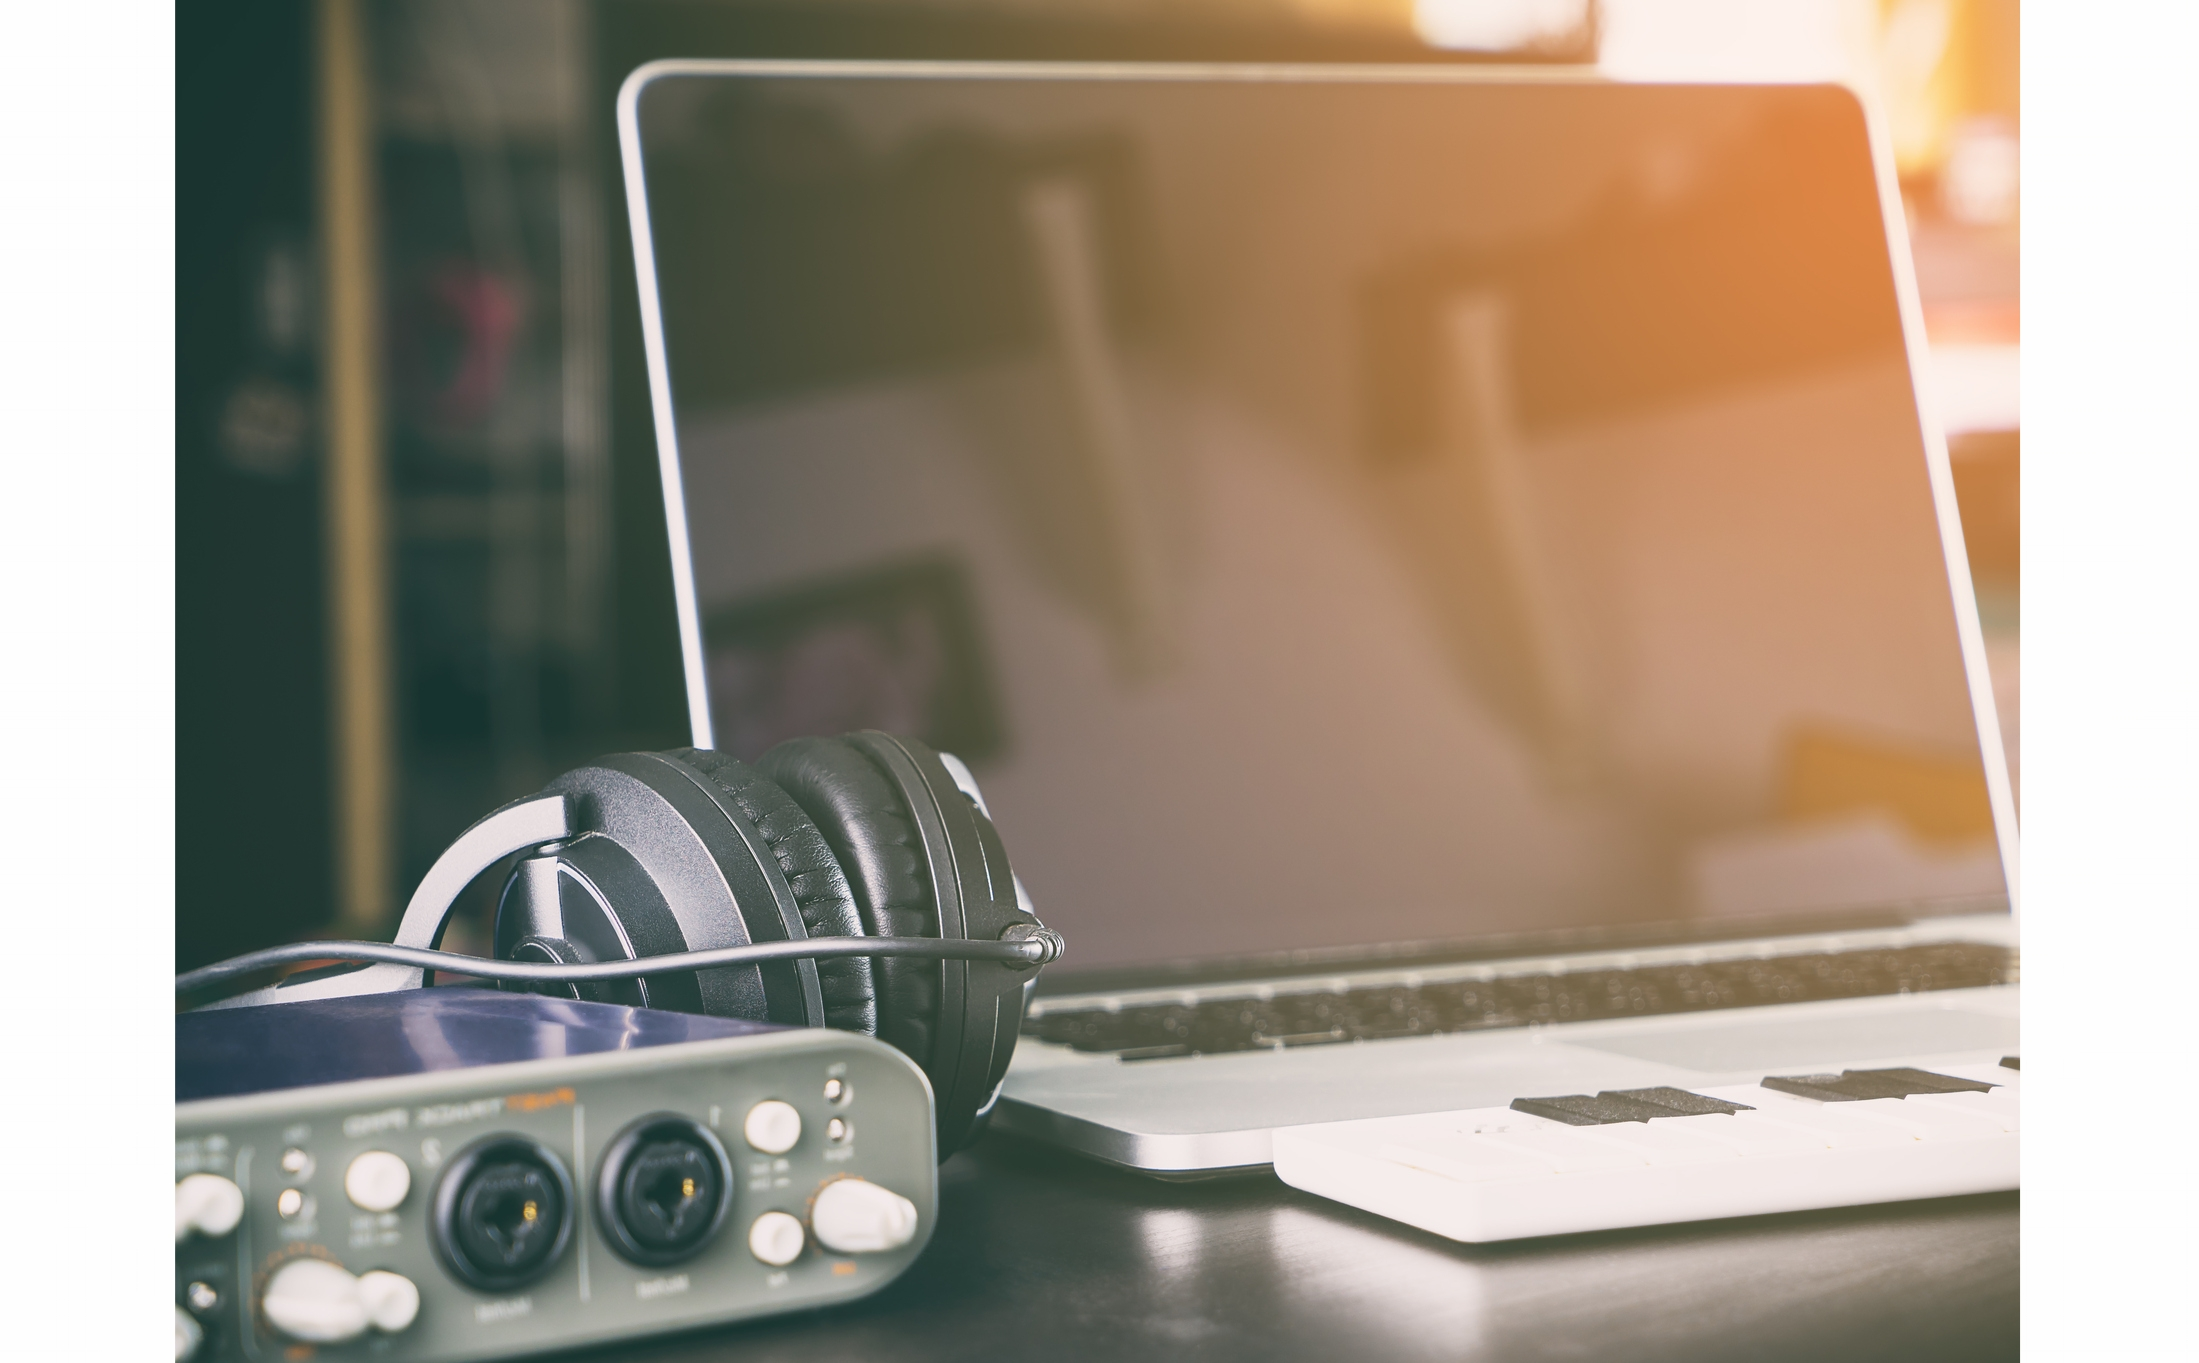 Audio Editing, Cleaning, Restoration, and Mastering - Podcast Editing, Production, and MasteringAudiobook Cleaning and Mastering to ACX StandardsMusic Editing, Mixing & Mastering